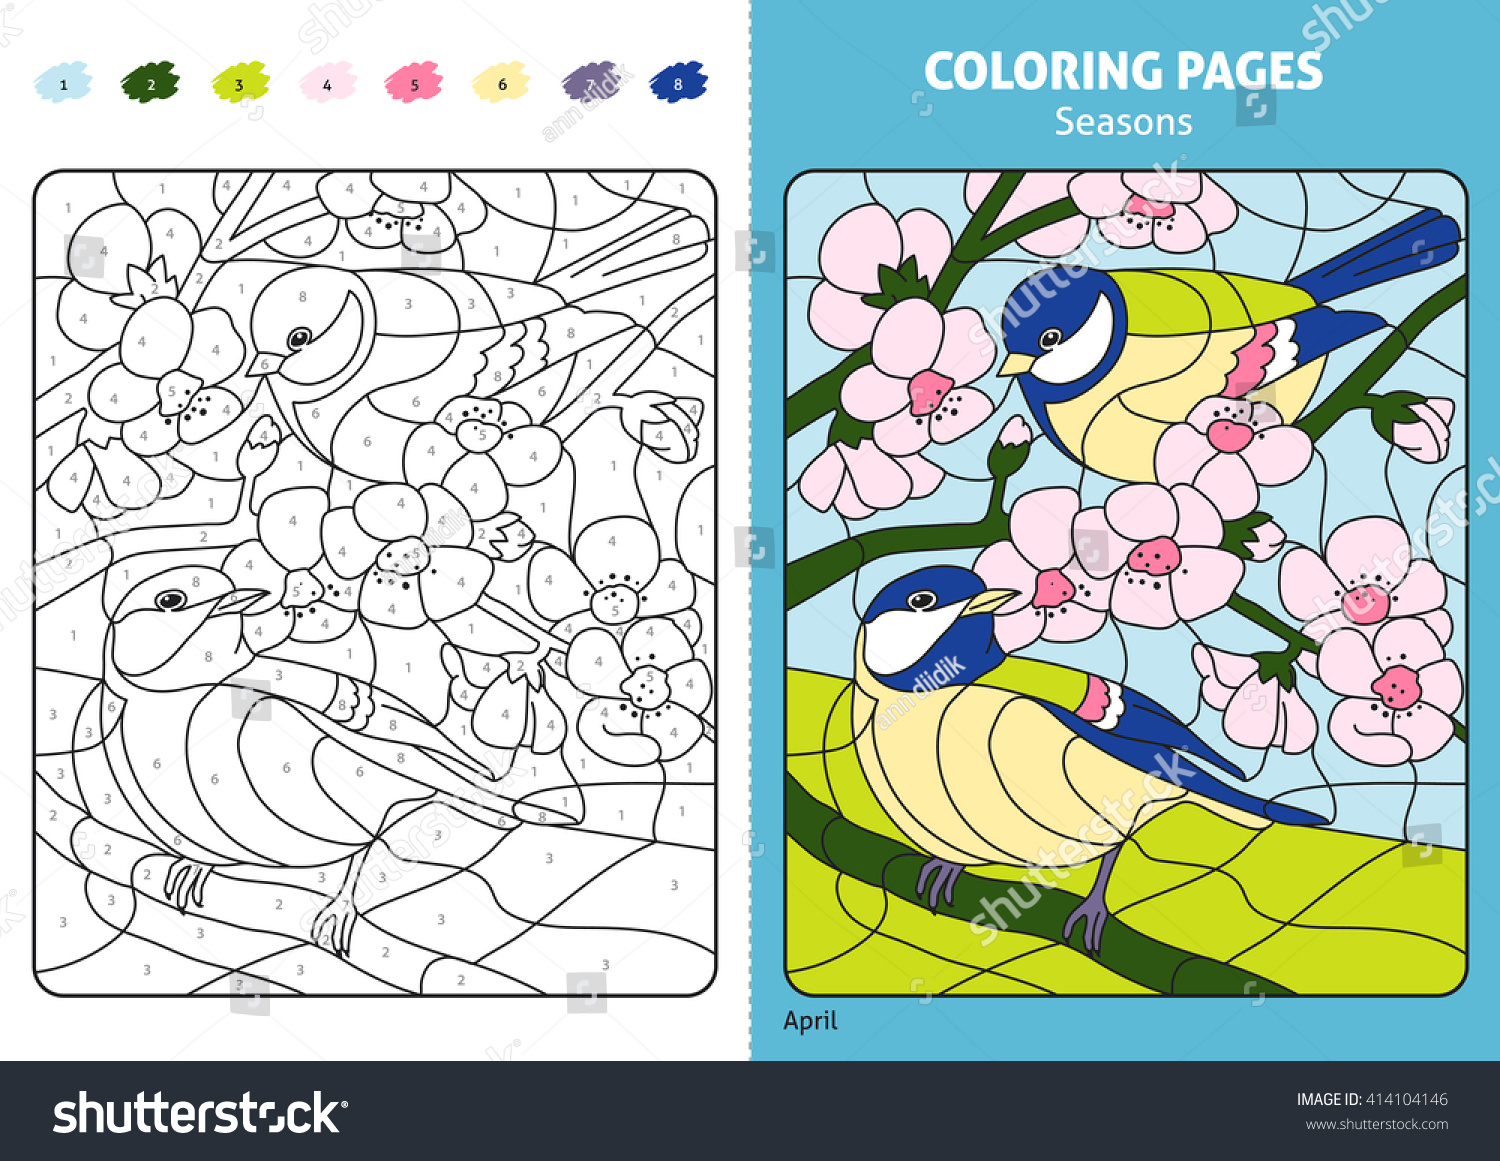 Seasons Coloring Page Kids April Monthprintable Stock